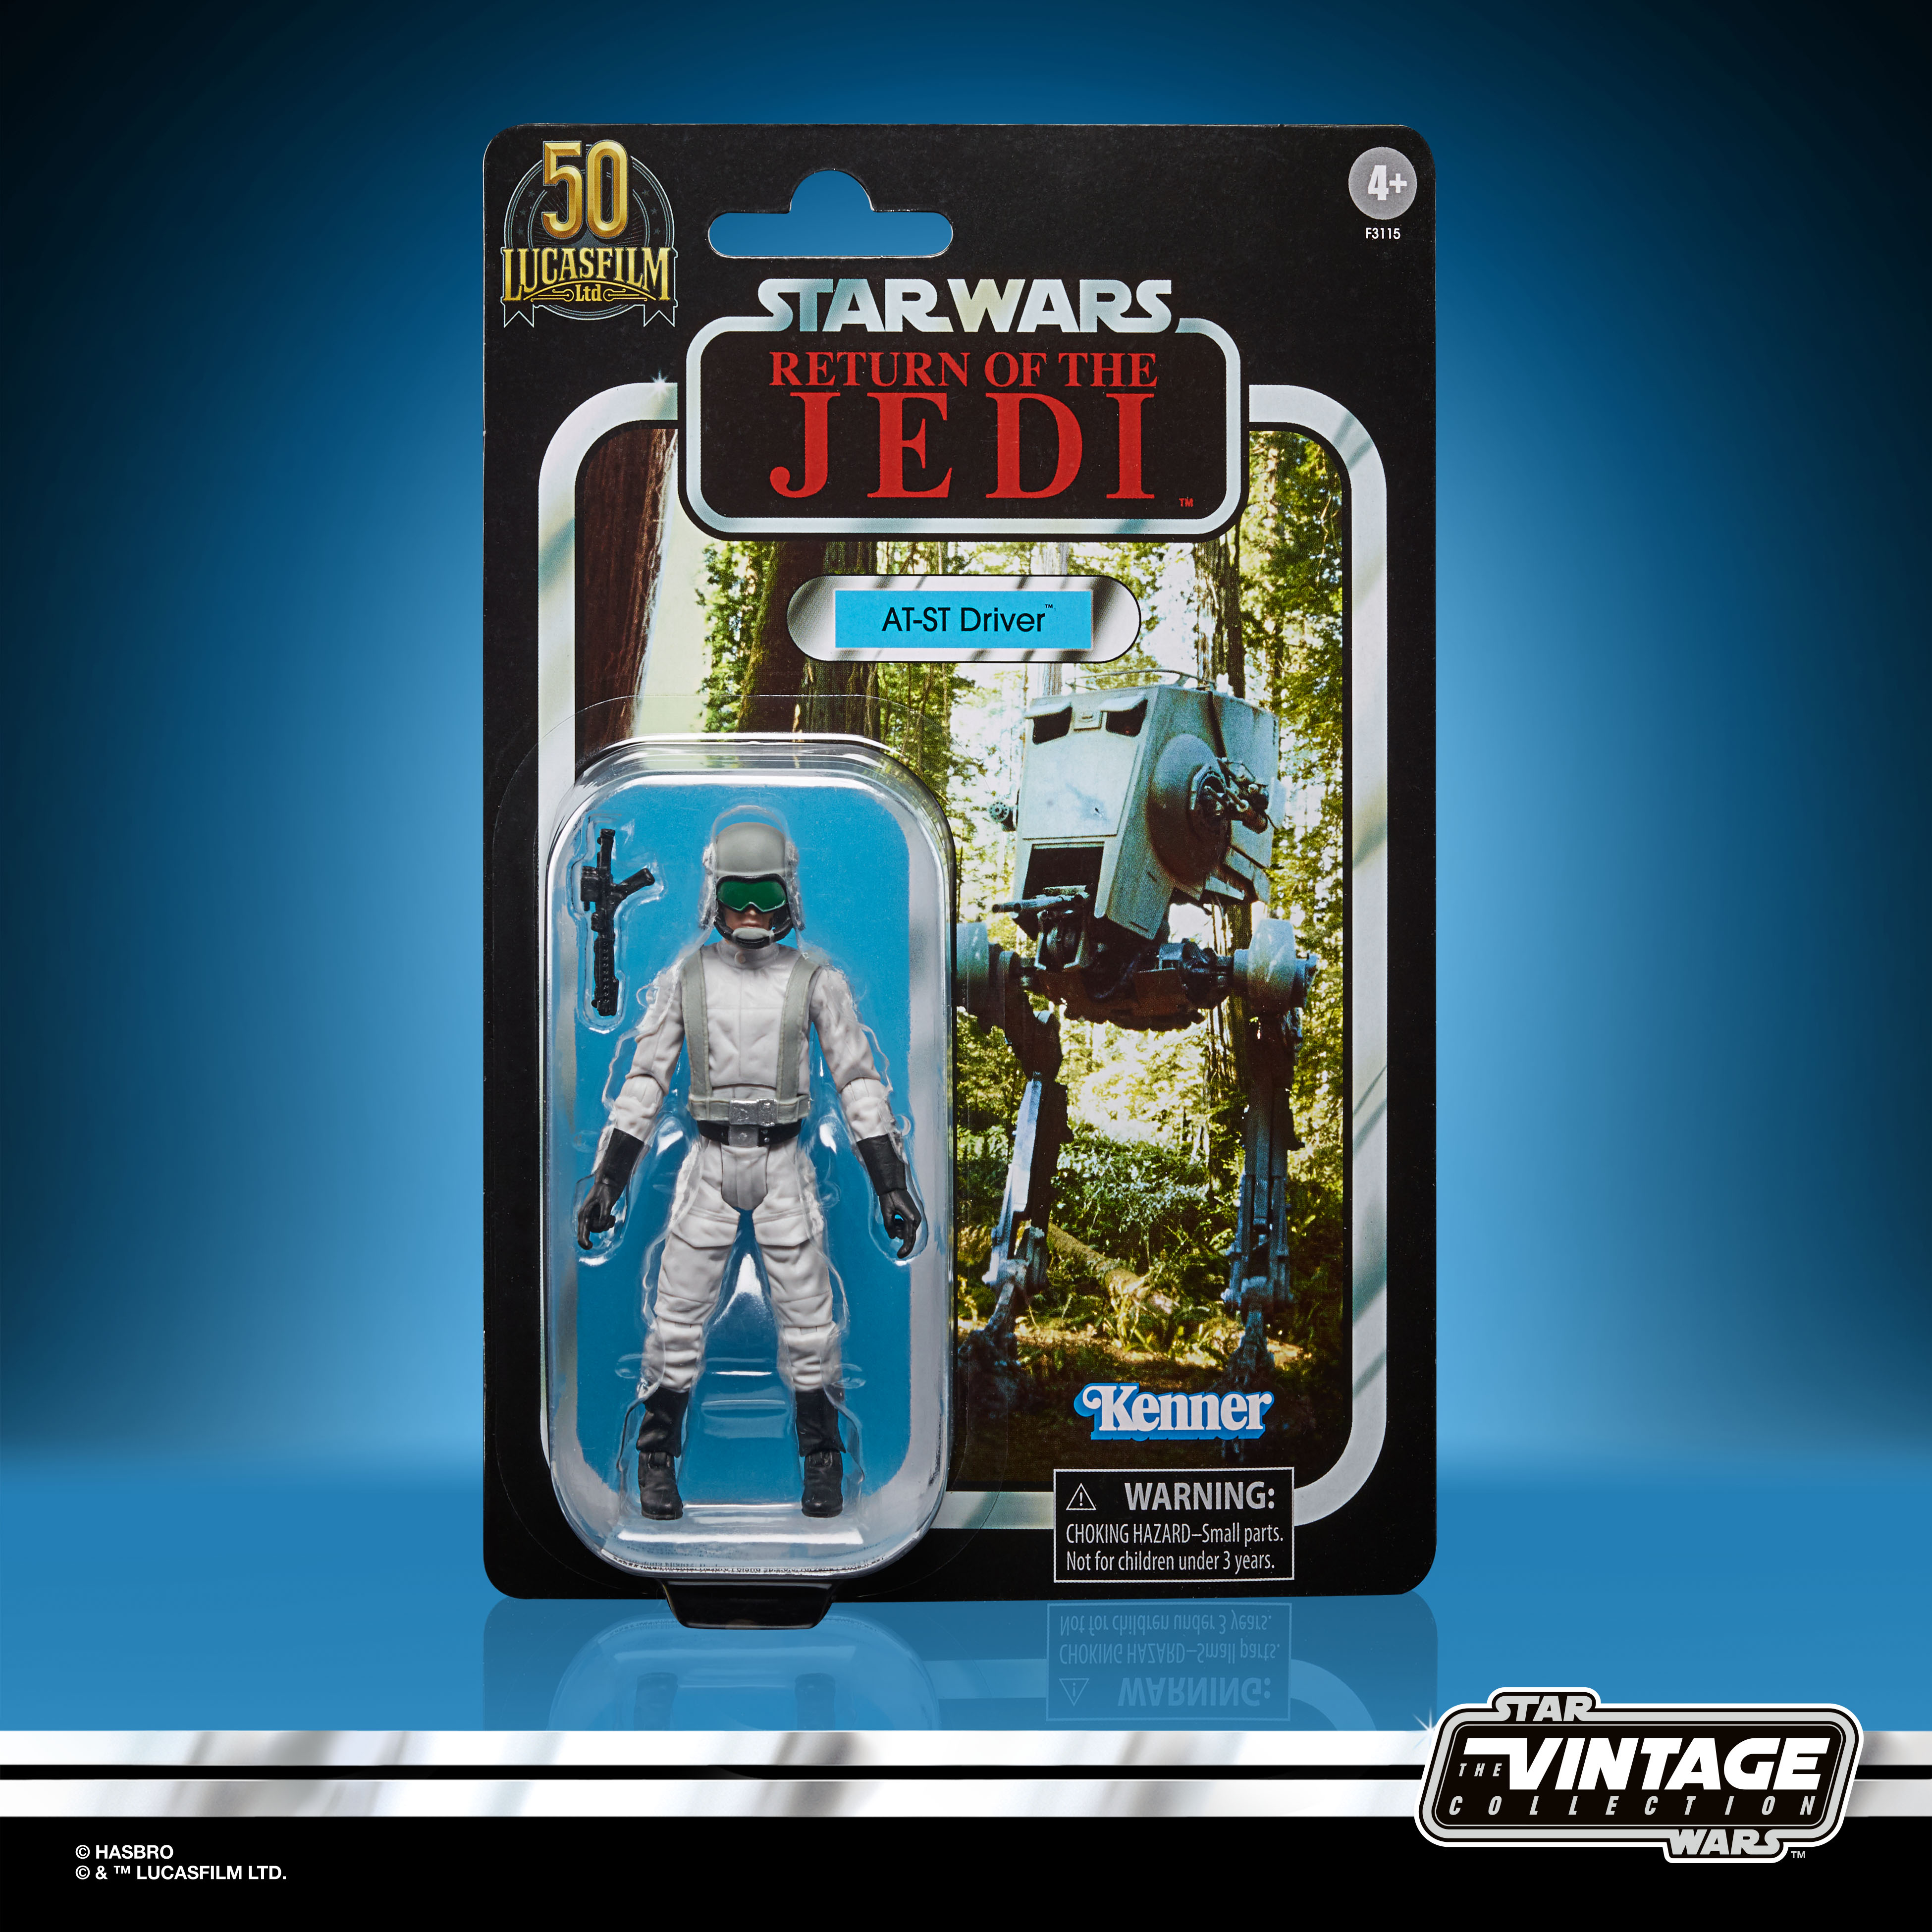 STAR WARS THE VINTAGE COLLECTION LUCASFILM FIRST 50 YEARS 3.75-INCH AT-ST DRIVER Figure – inpck